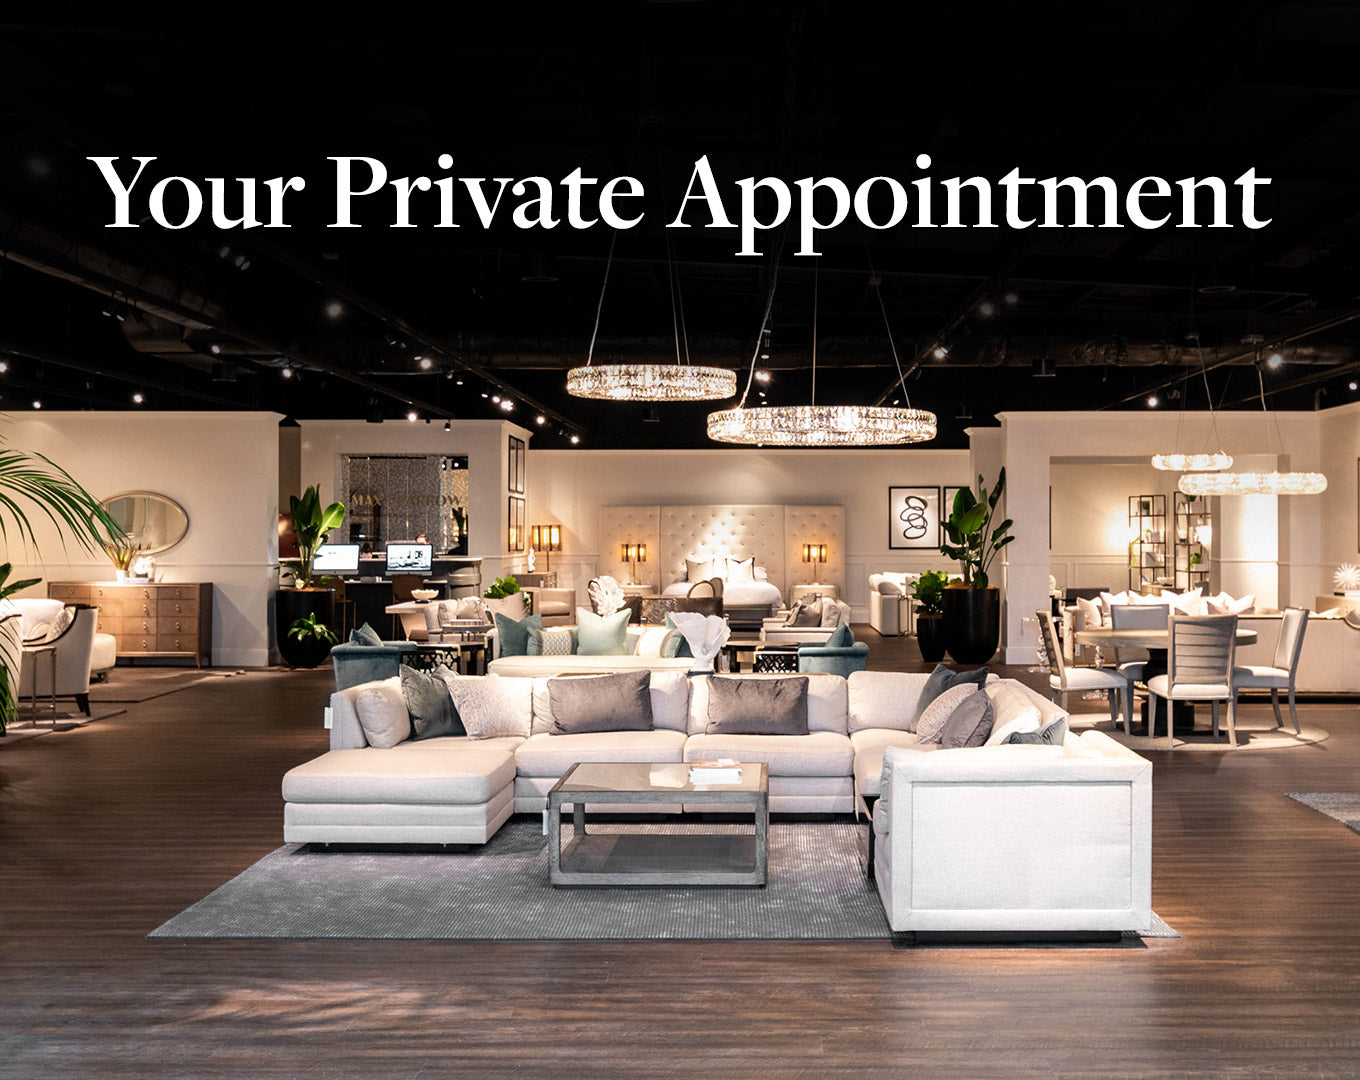 Your Private Appointment